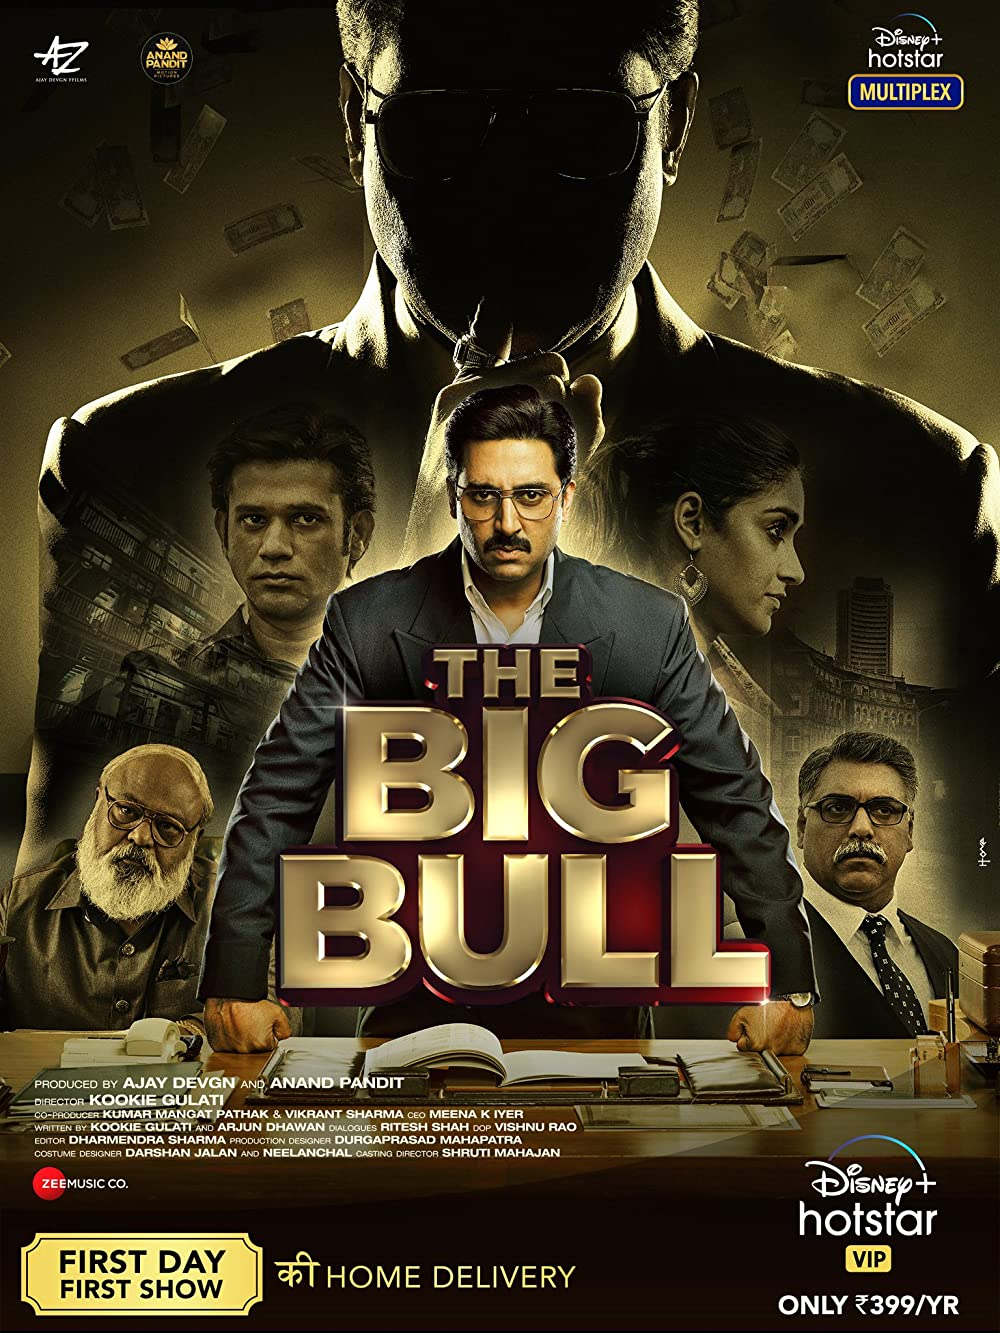 The Big Bull 2021 Hindi Movie 720p DSNP HDRip ESubs 1.04GB Download